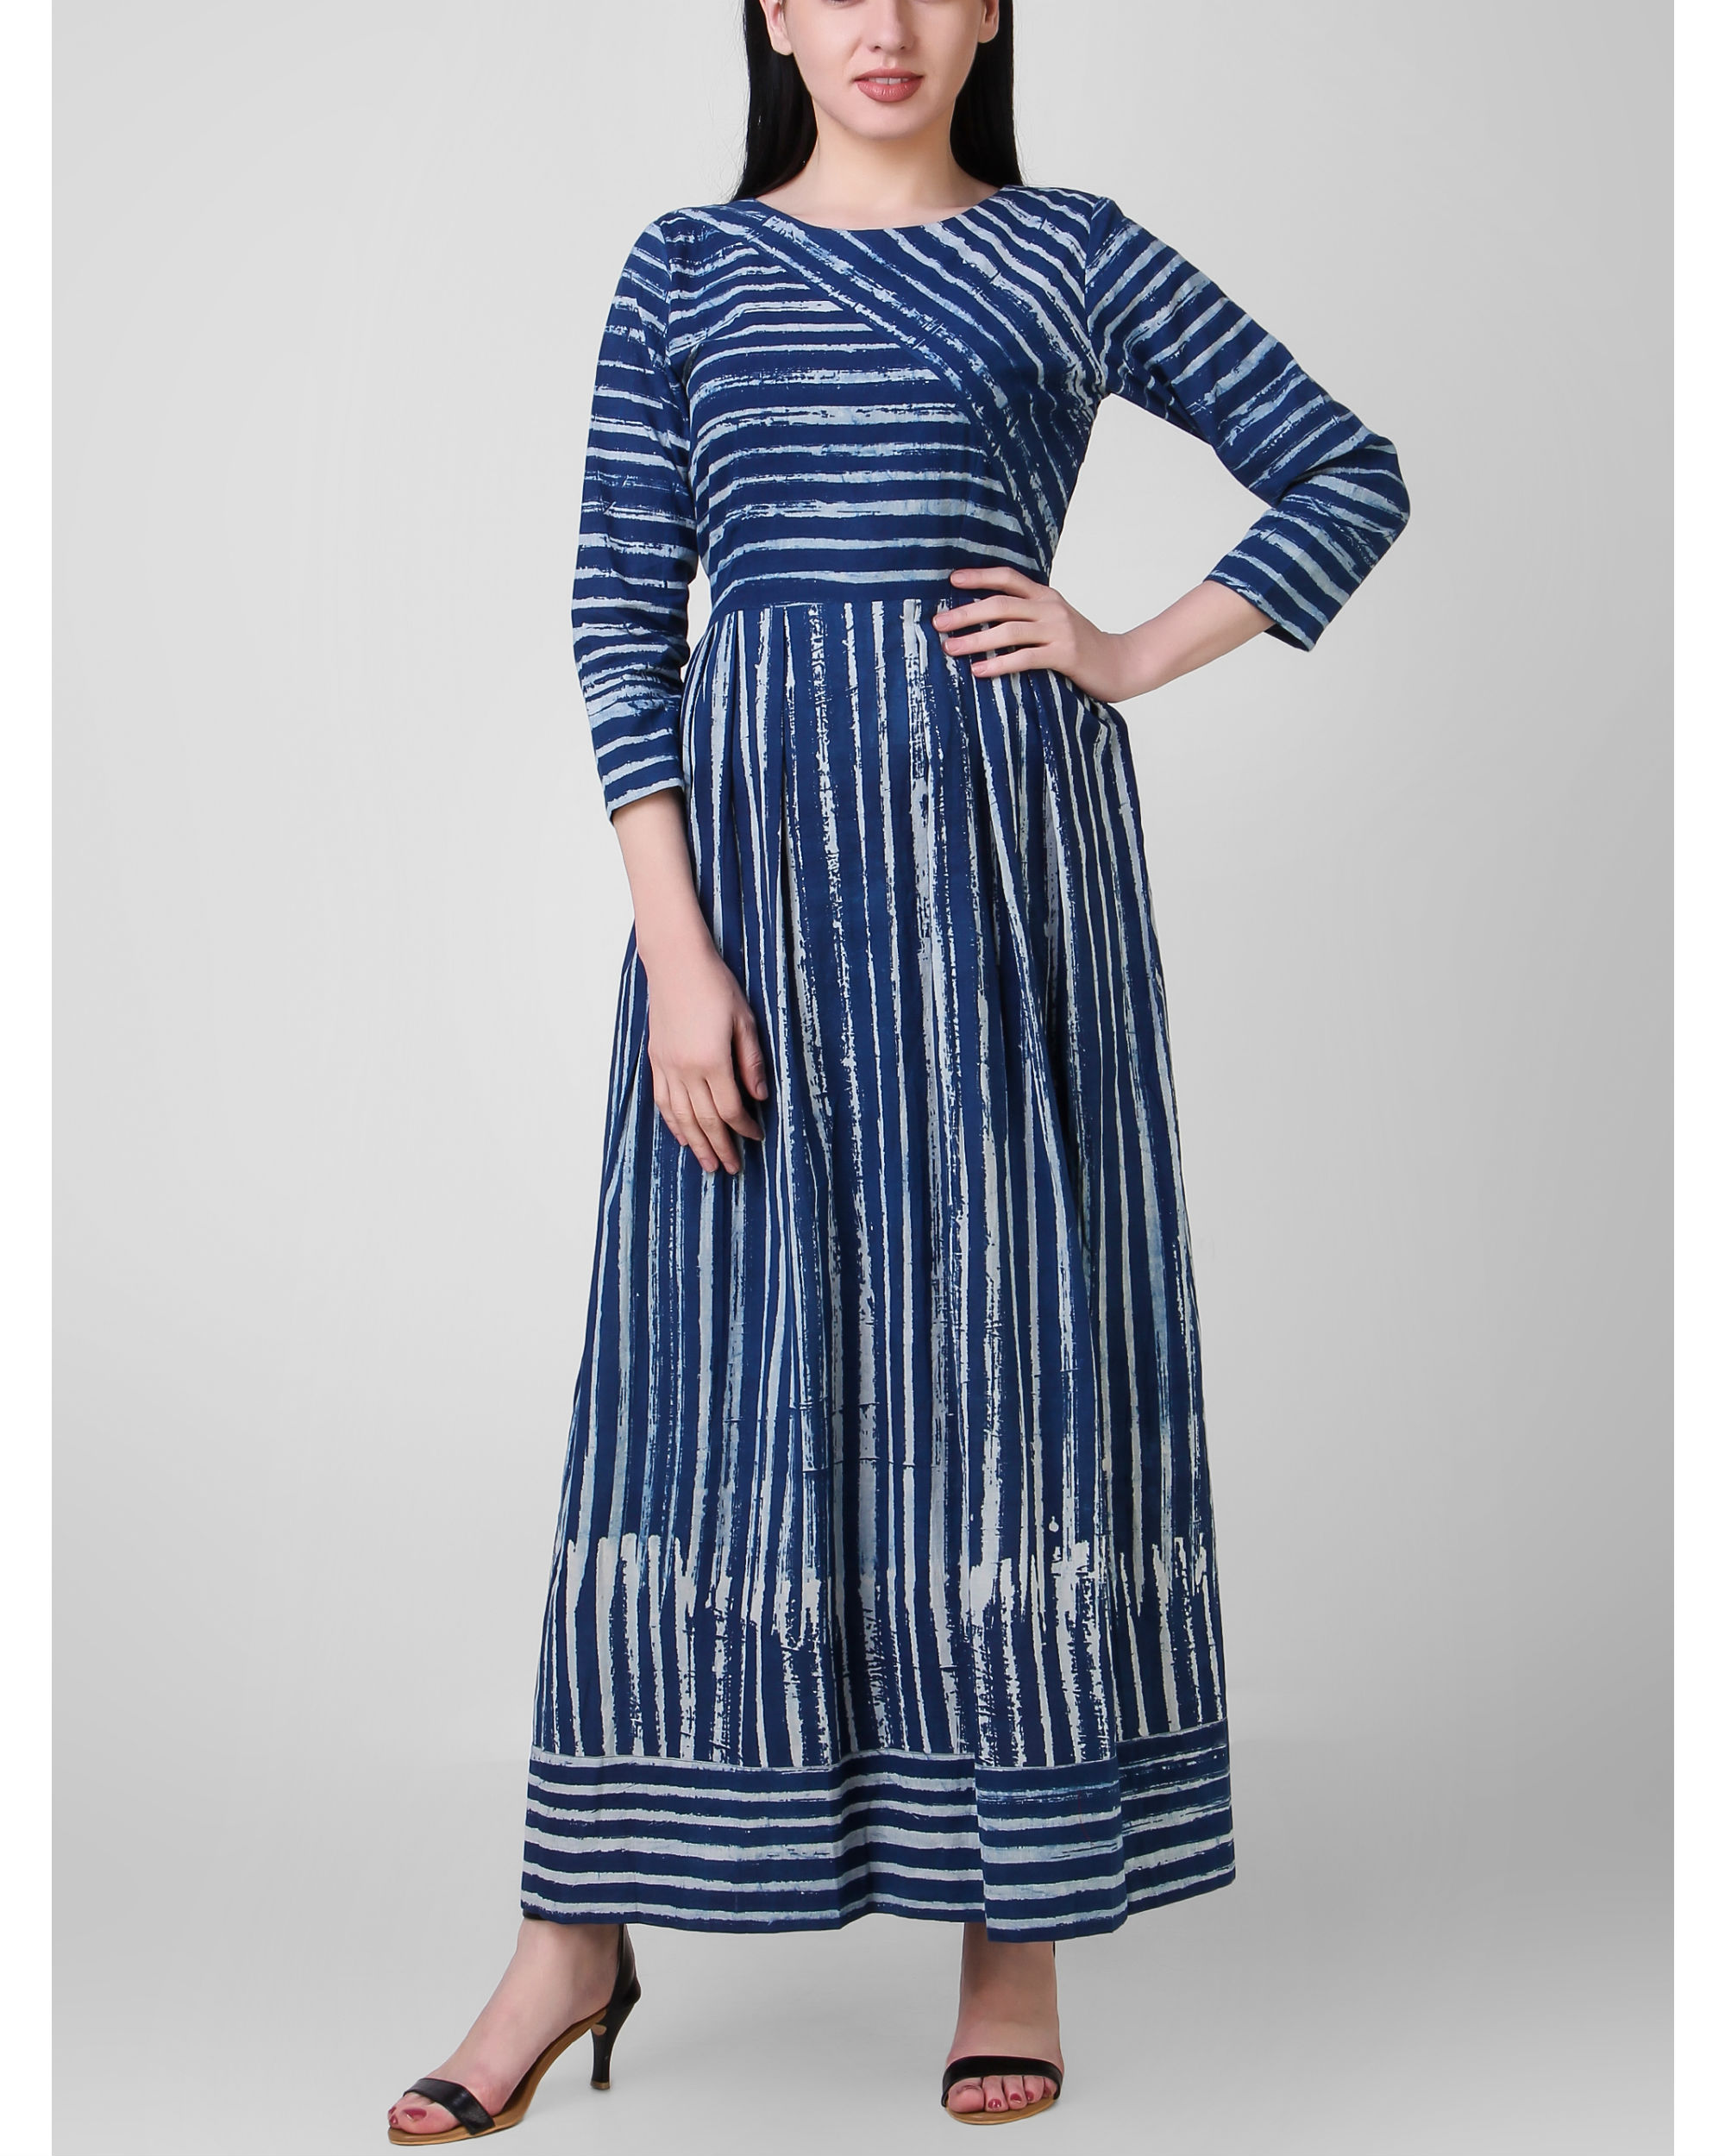 Indigo dabu striped dress